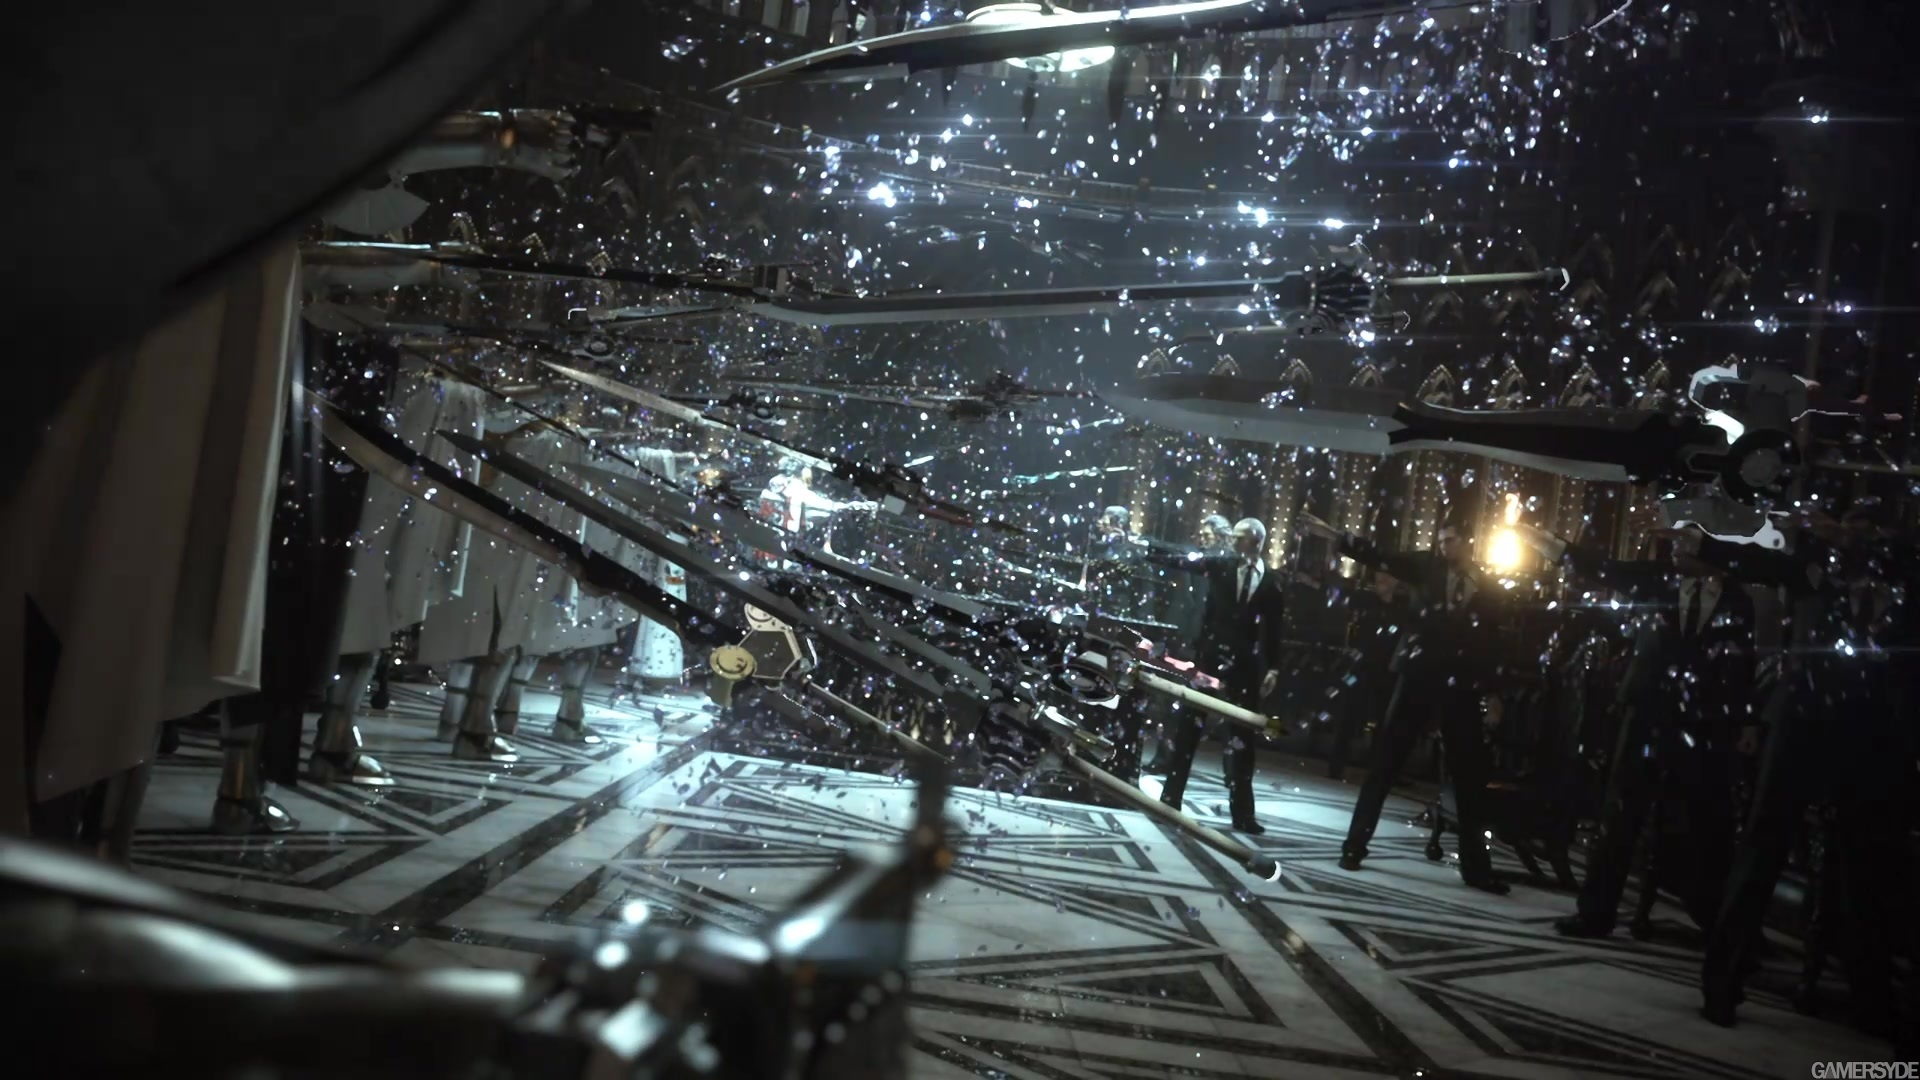 Download Free Final Fantasy Wallpapers 15 Beautiful: Final Fantasy 15 Wallpapers HD